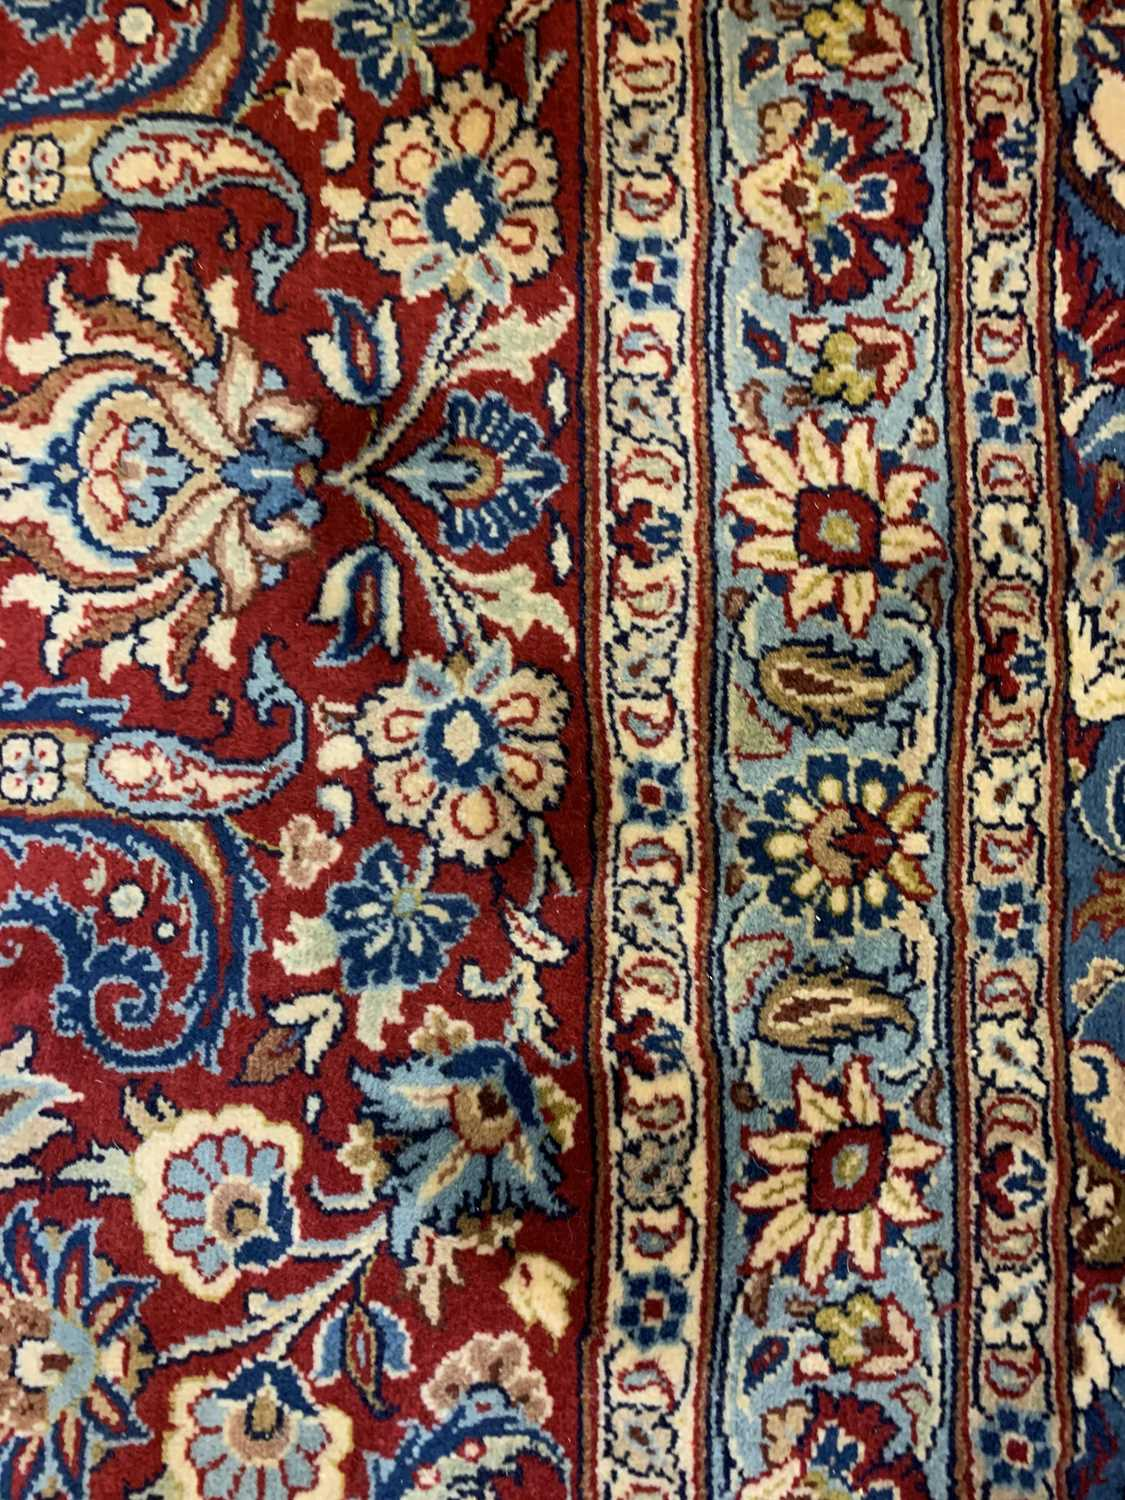 A large Persian Khorassan carpet, - Image 15 of 17